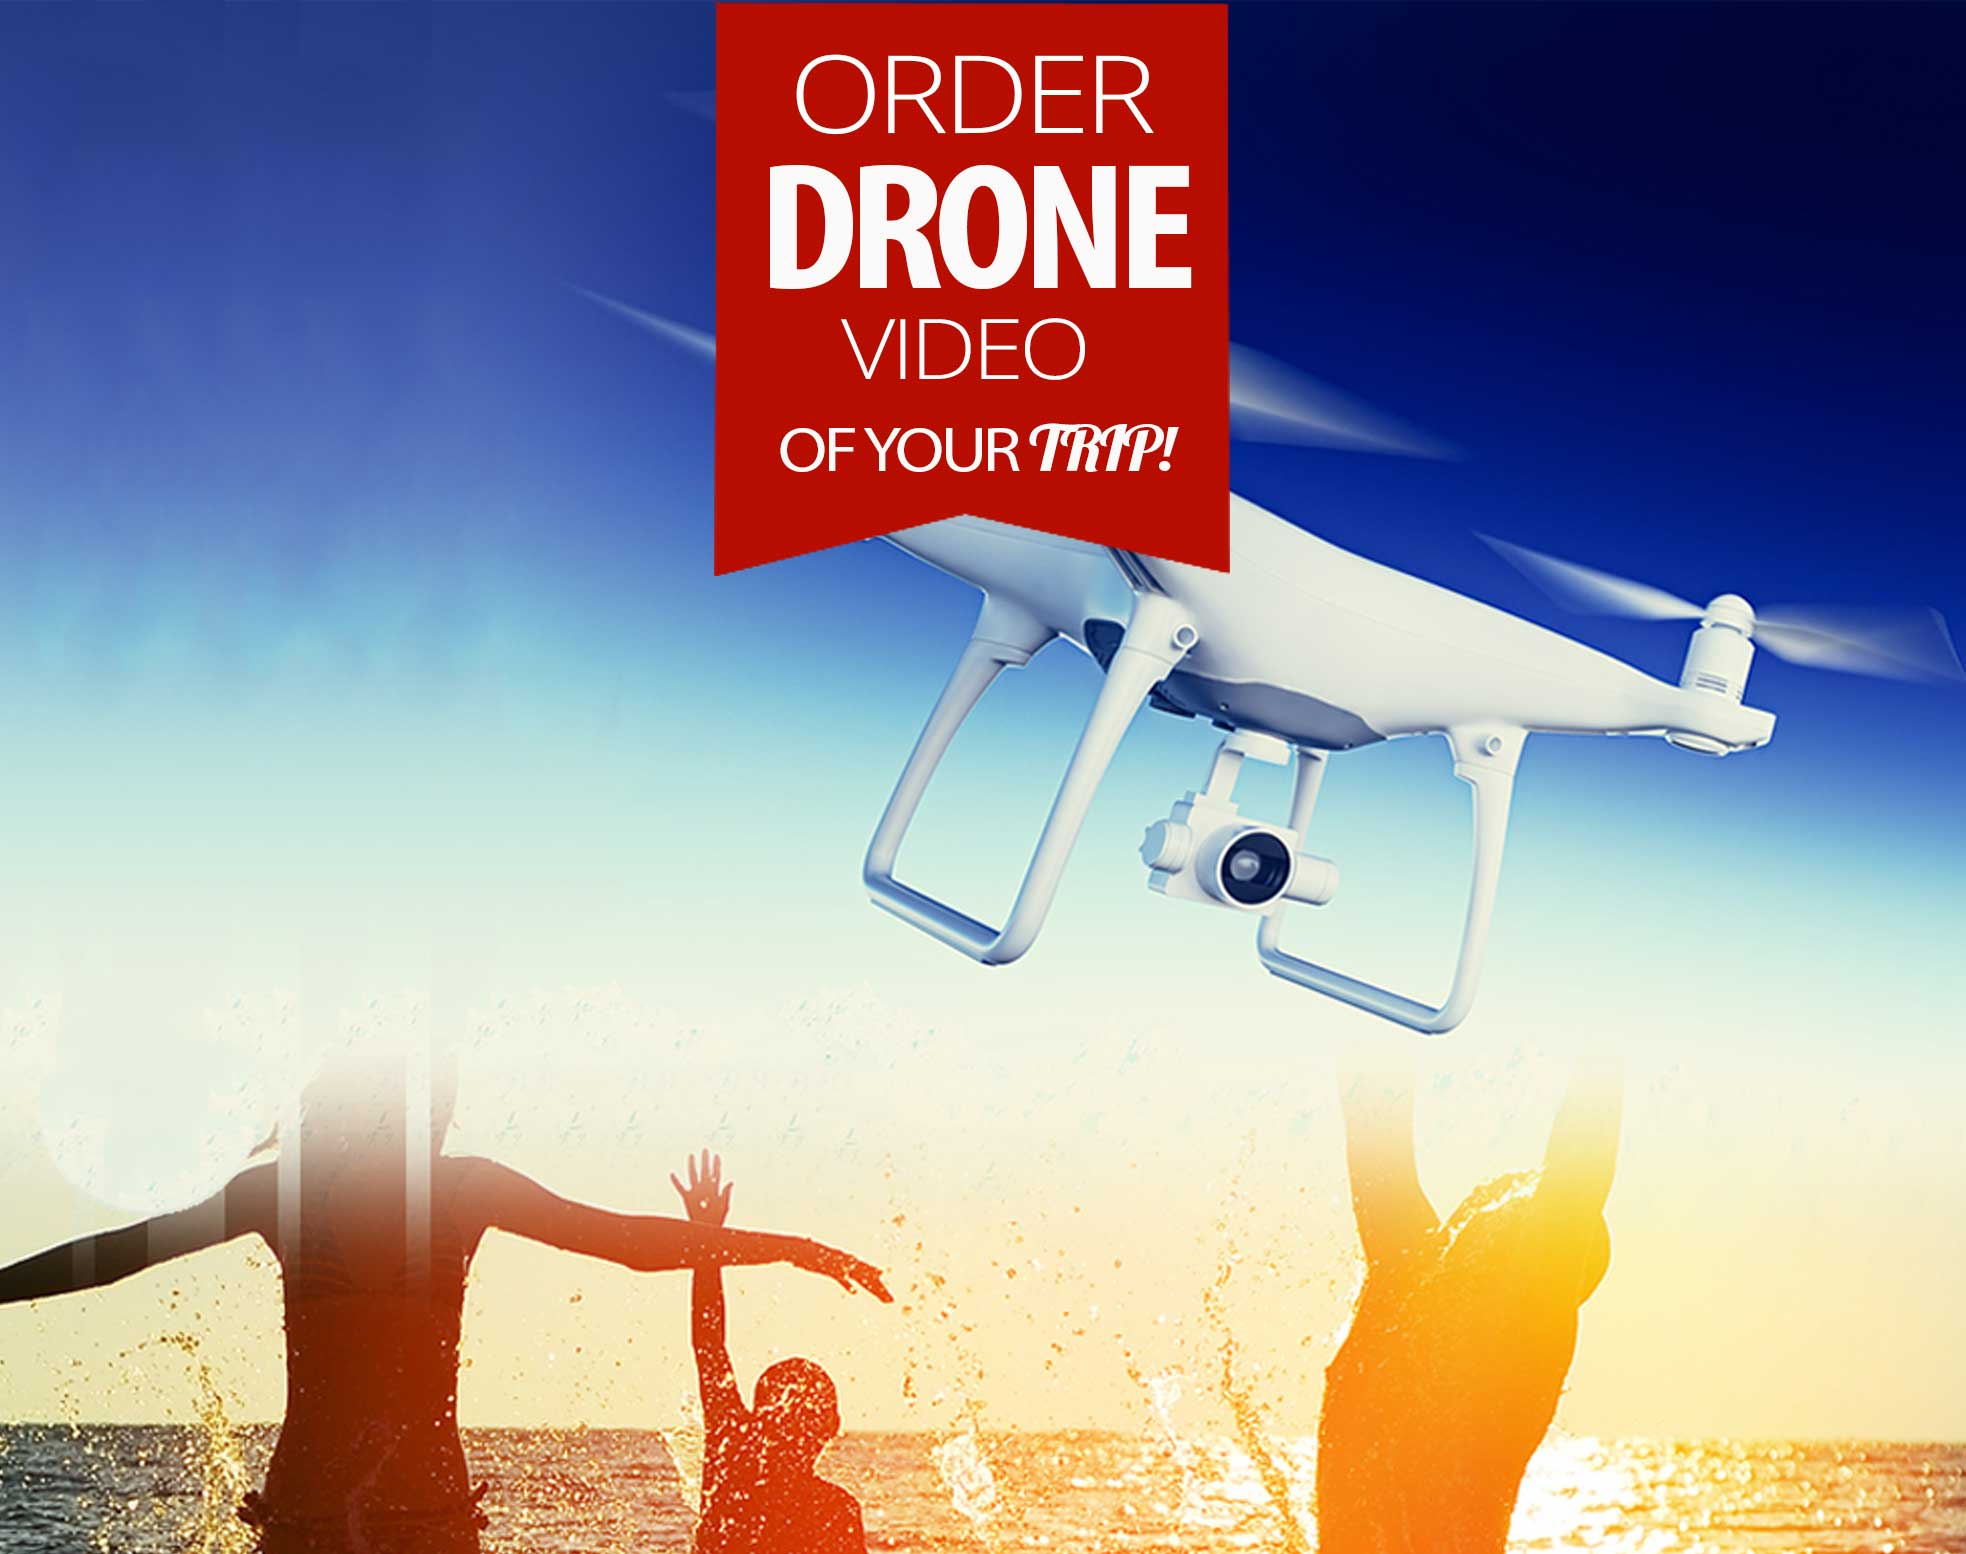 Order yacht charter drone video